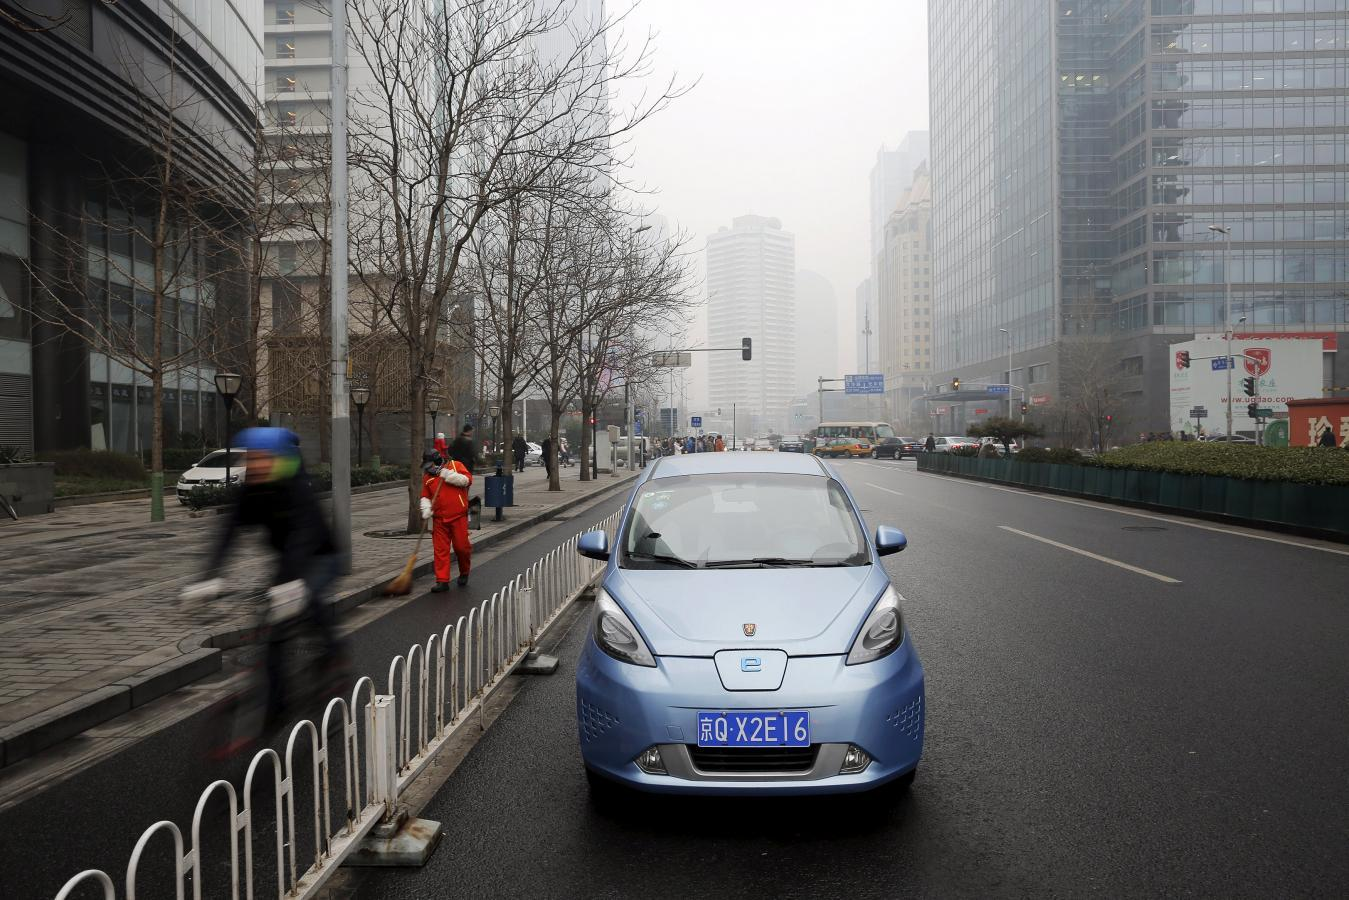 A Roewe E50 Electric Car Is Parked Next To Street As Bicycle Travels Past Amid Heavy Smog After The City Issued Its First Ever Red Alert For Air